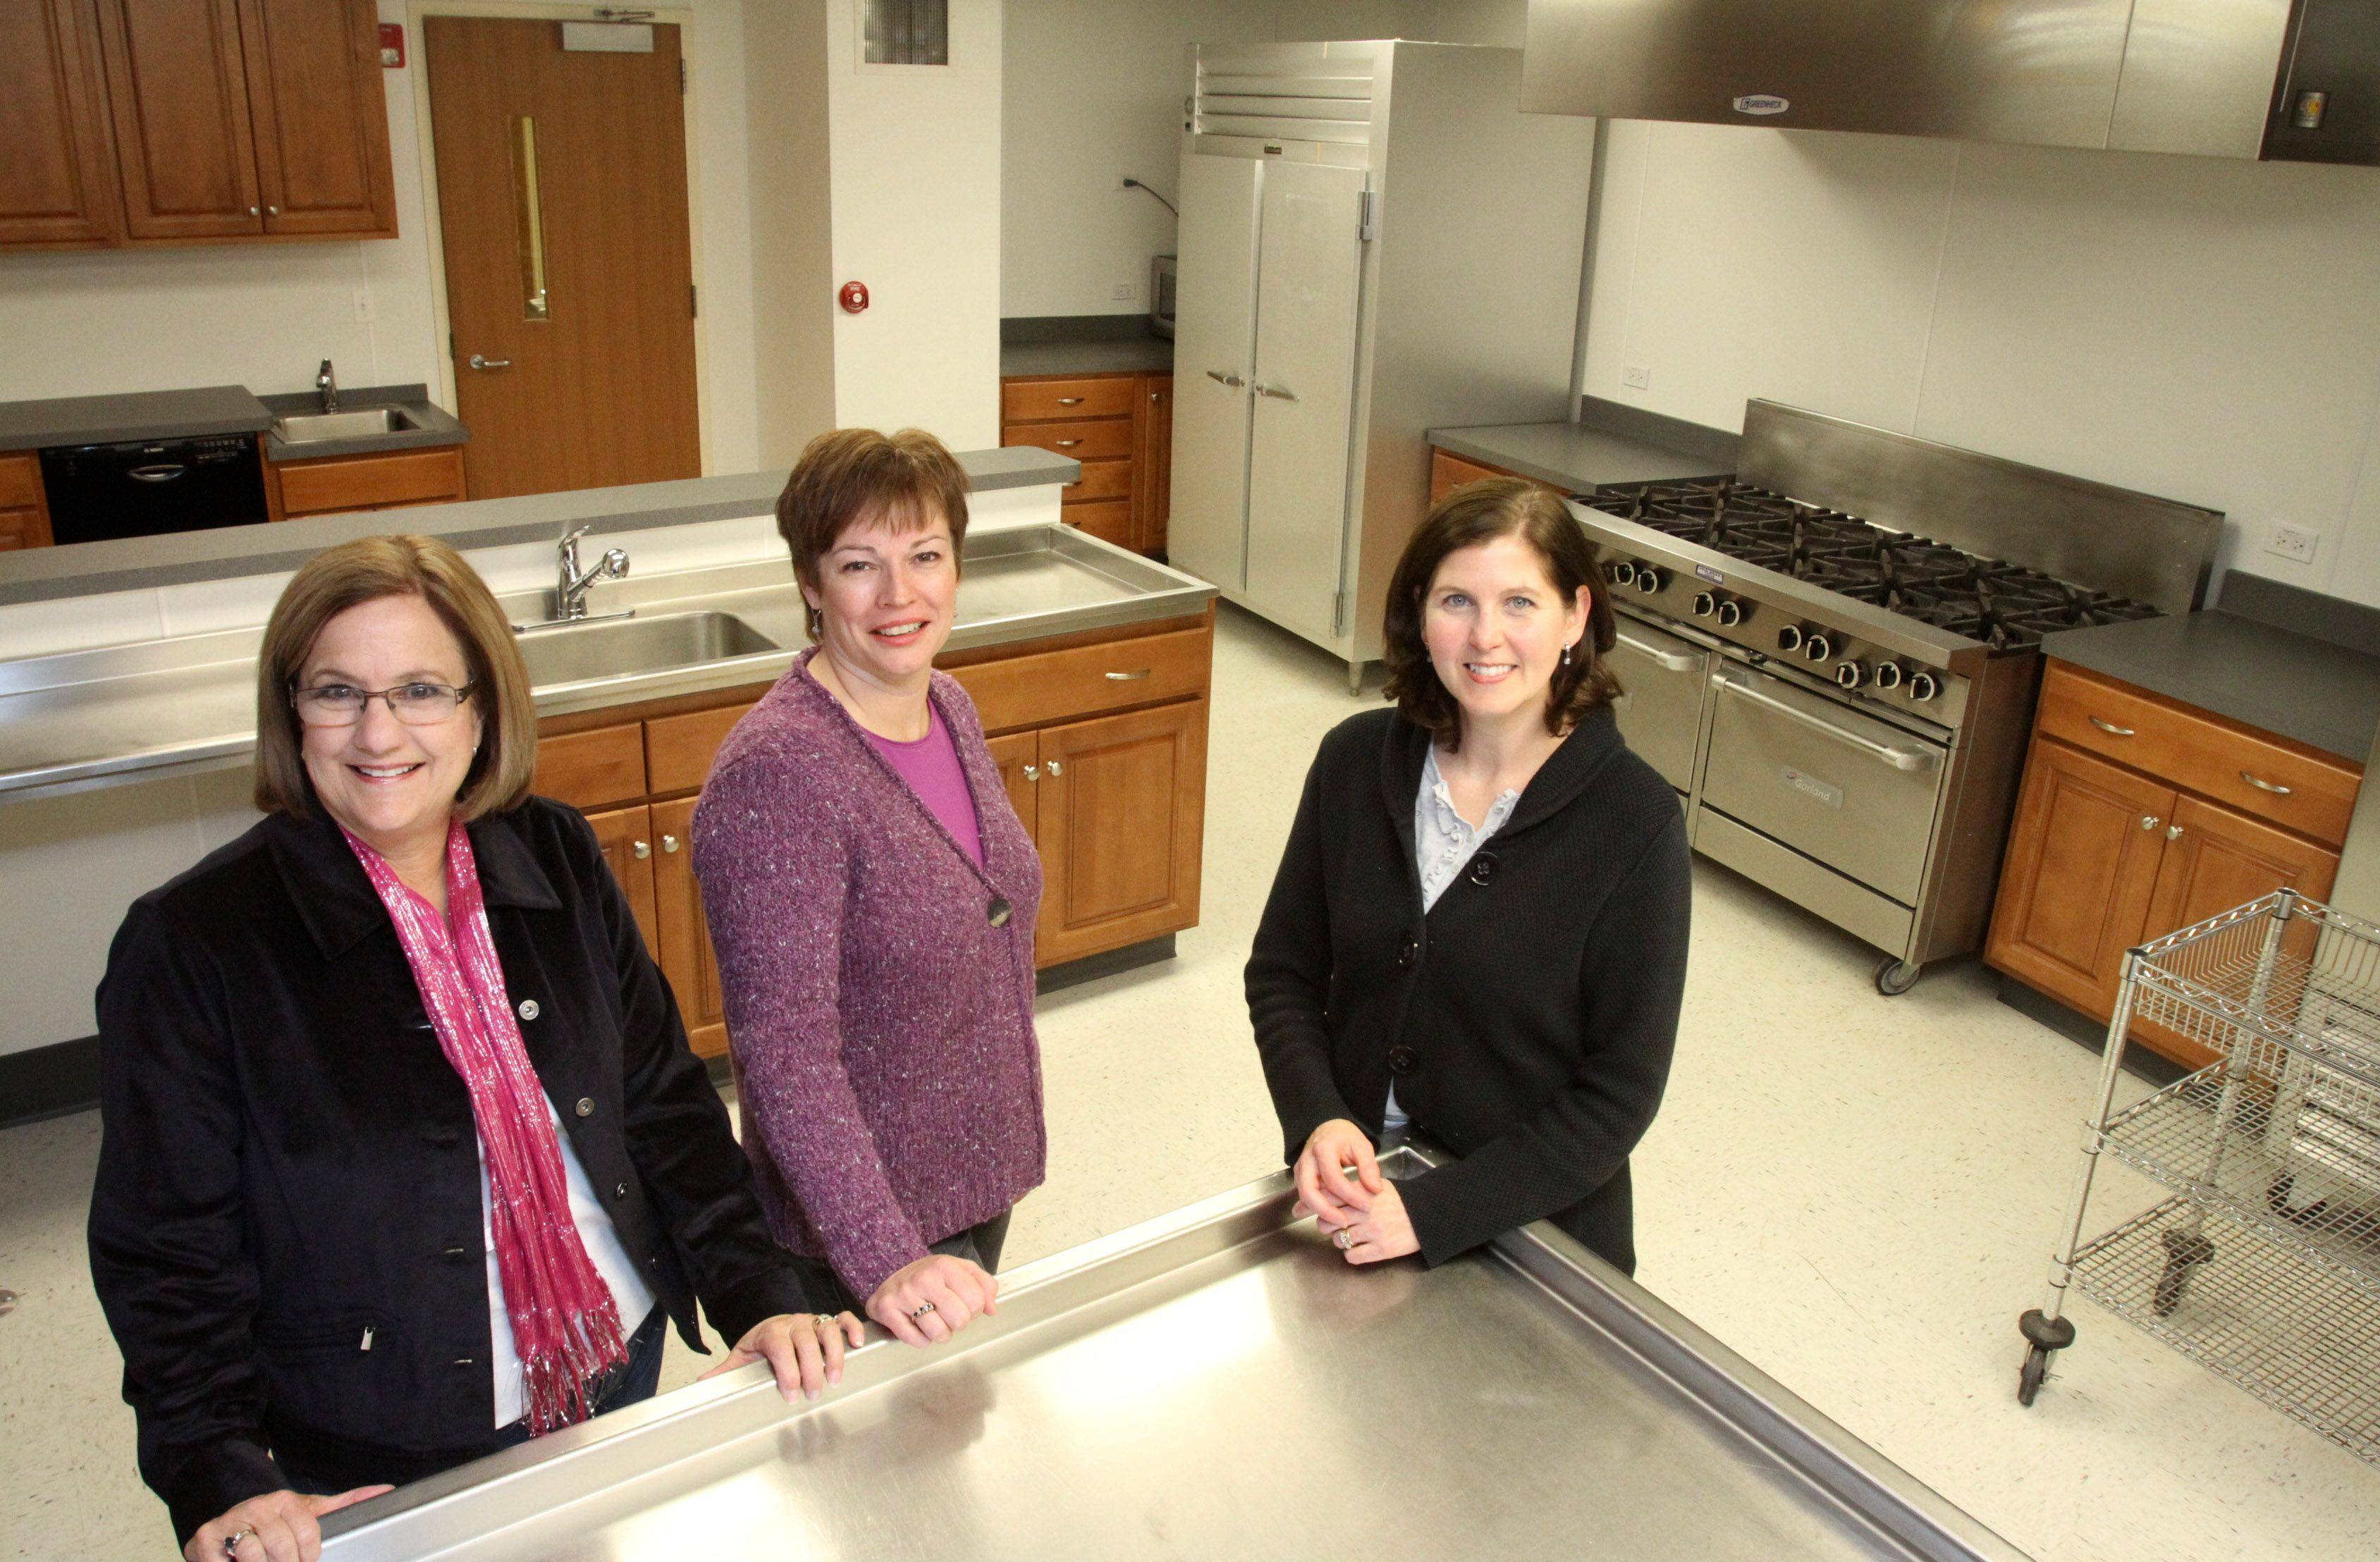 Betsy Swank, owner of Designs in Context, from left, Julia Karnstedt, design assistant, and Mary Ann Seagrist with Brighton Cabinetry used their skills and connections to help build a new kitchen for St. Lawrence Episcopal Church in Libertyville.